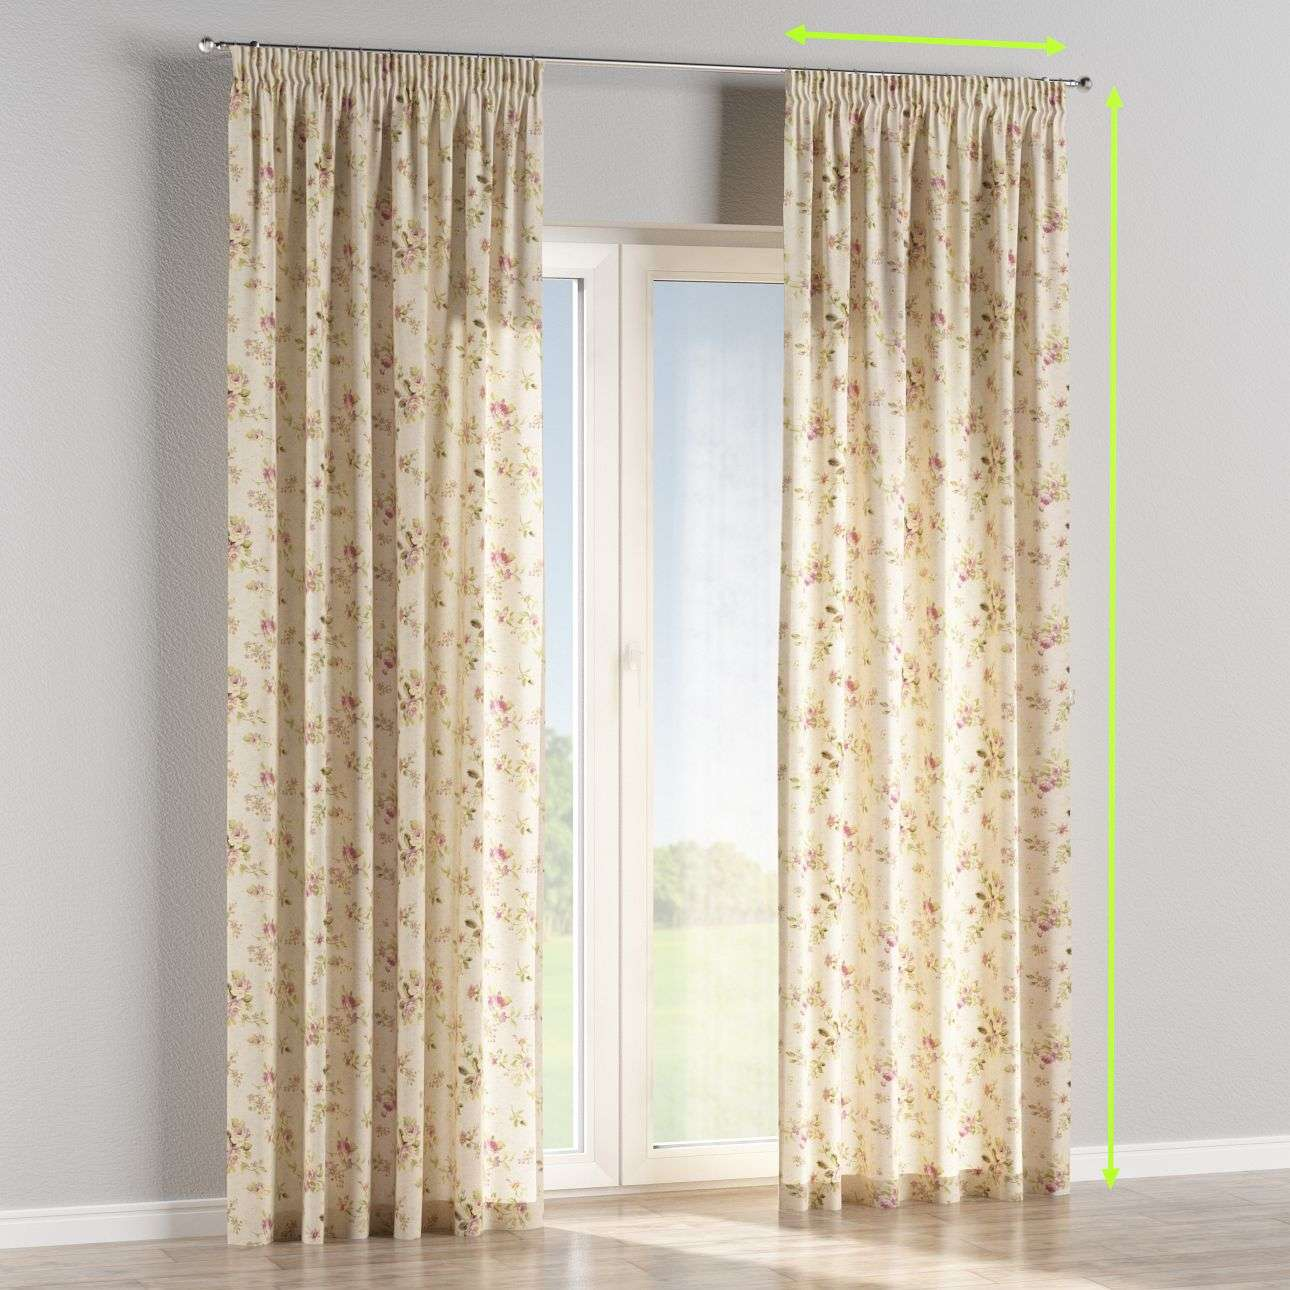 Pencil pleat lined curtains in collection Londres, fabric: 122-07